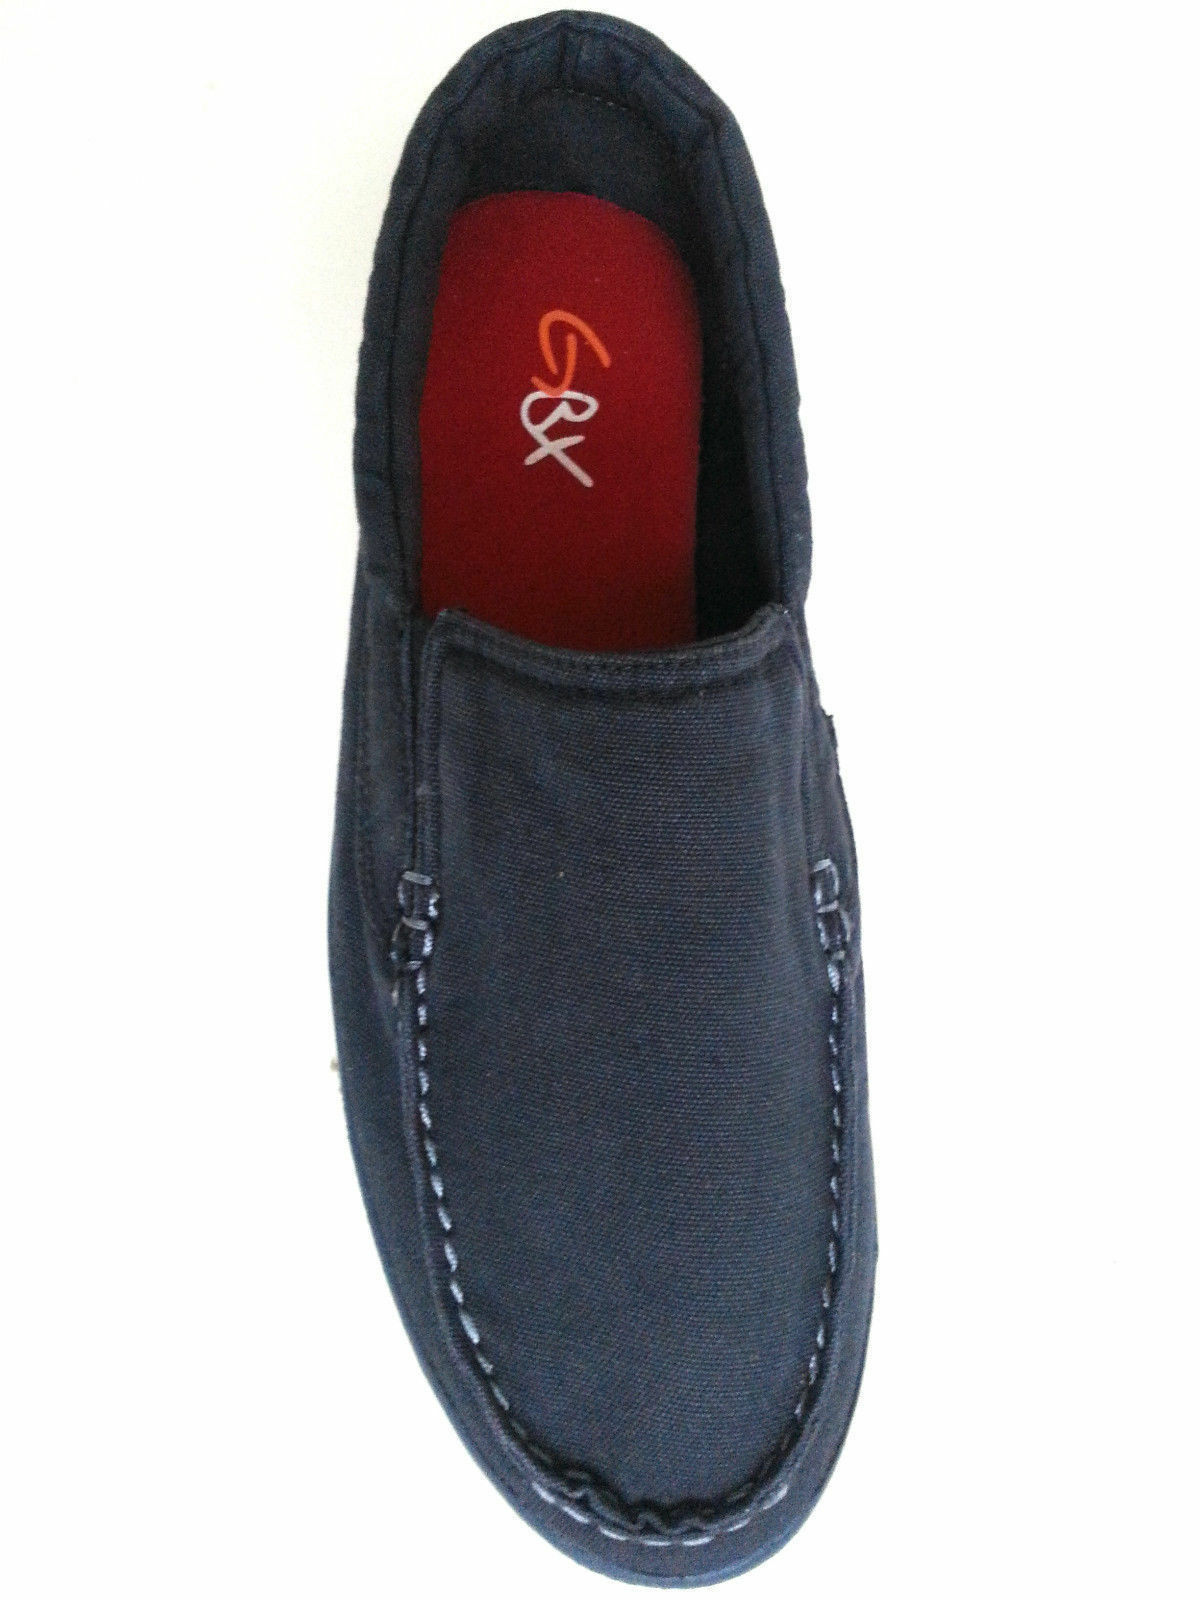 New GBX Men's Maddox Faded Navy Canvas Loafer shoes Sz 9M